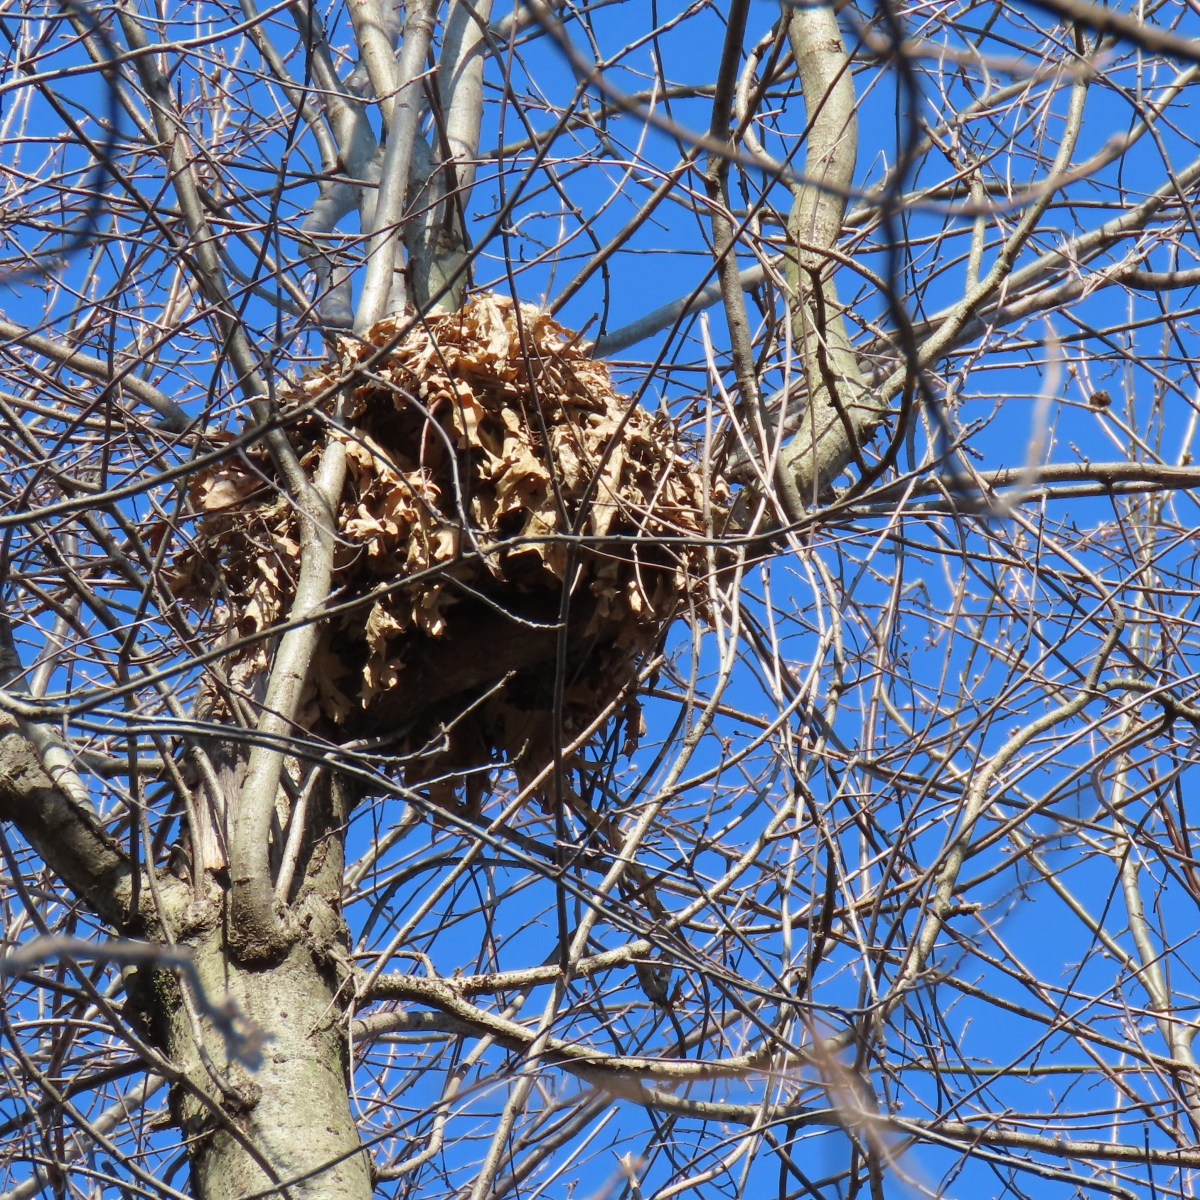 A squirrel nest, or drey, high up in a tree